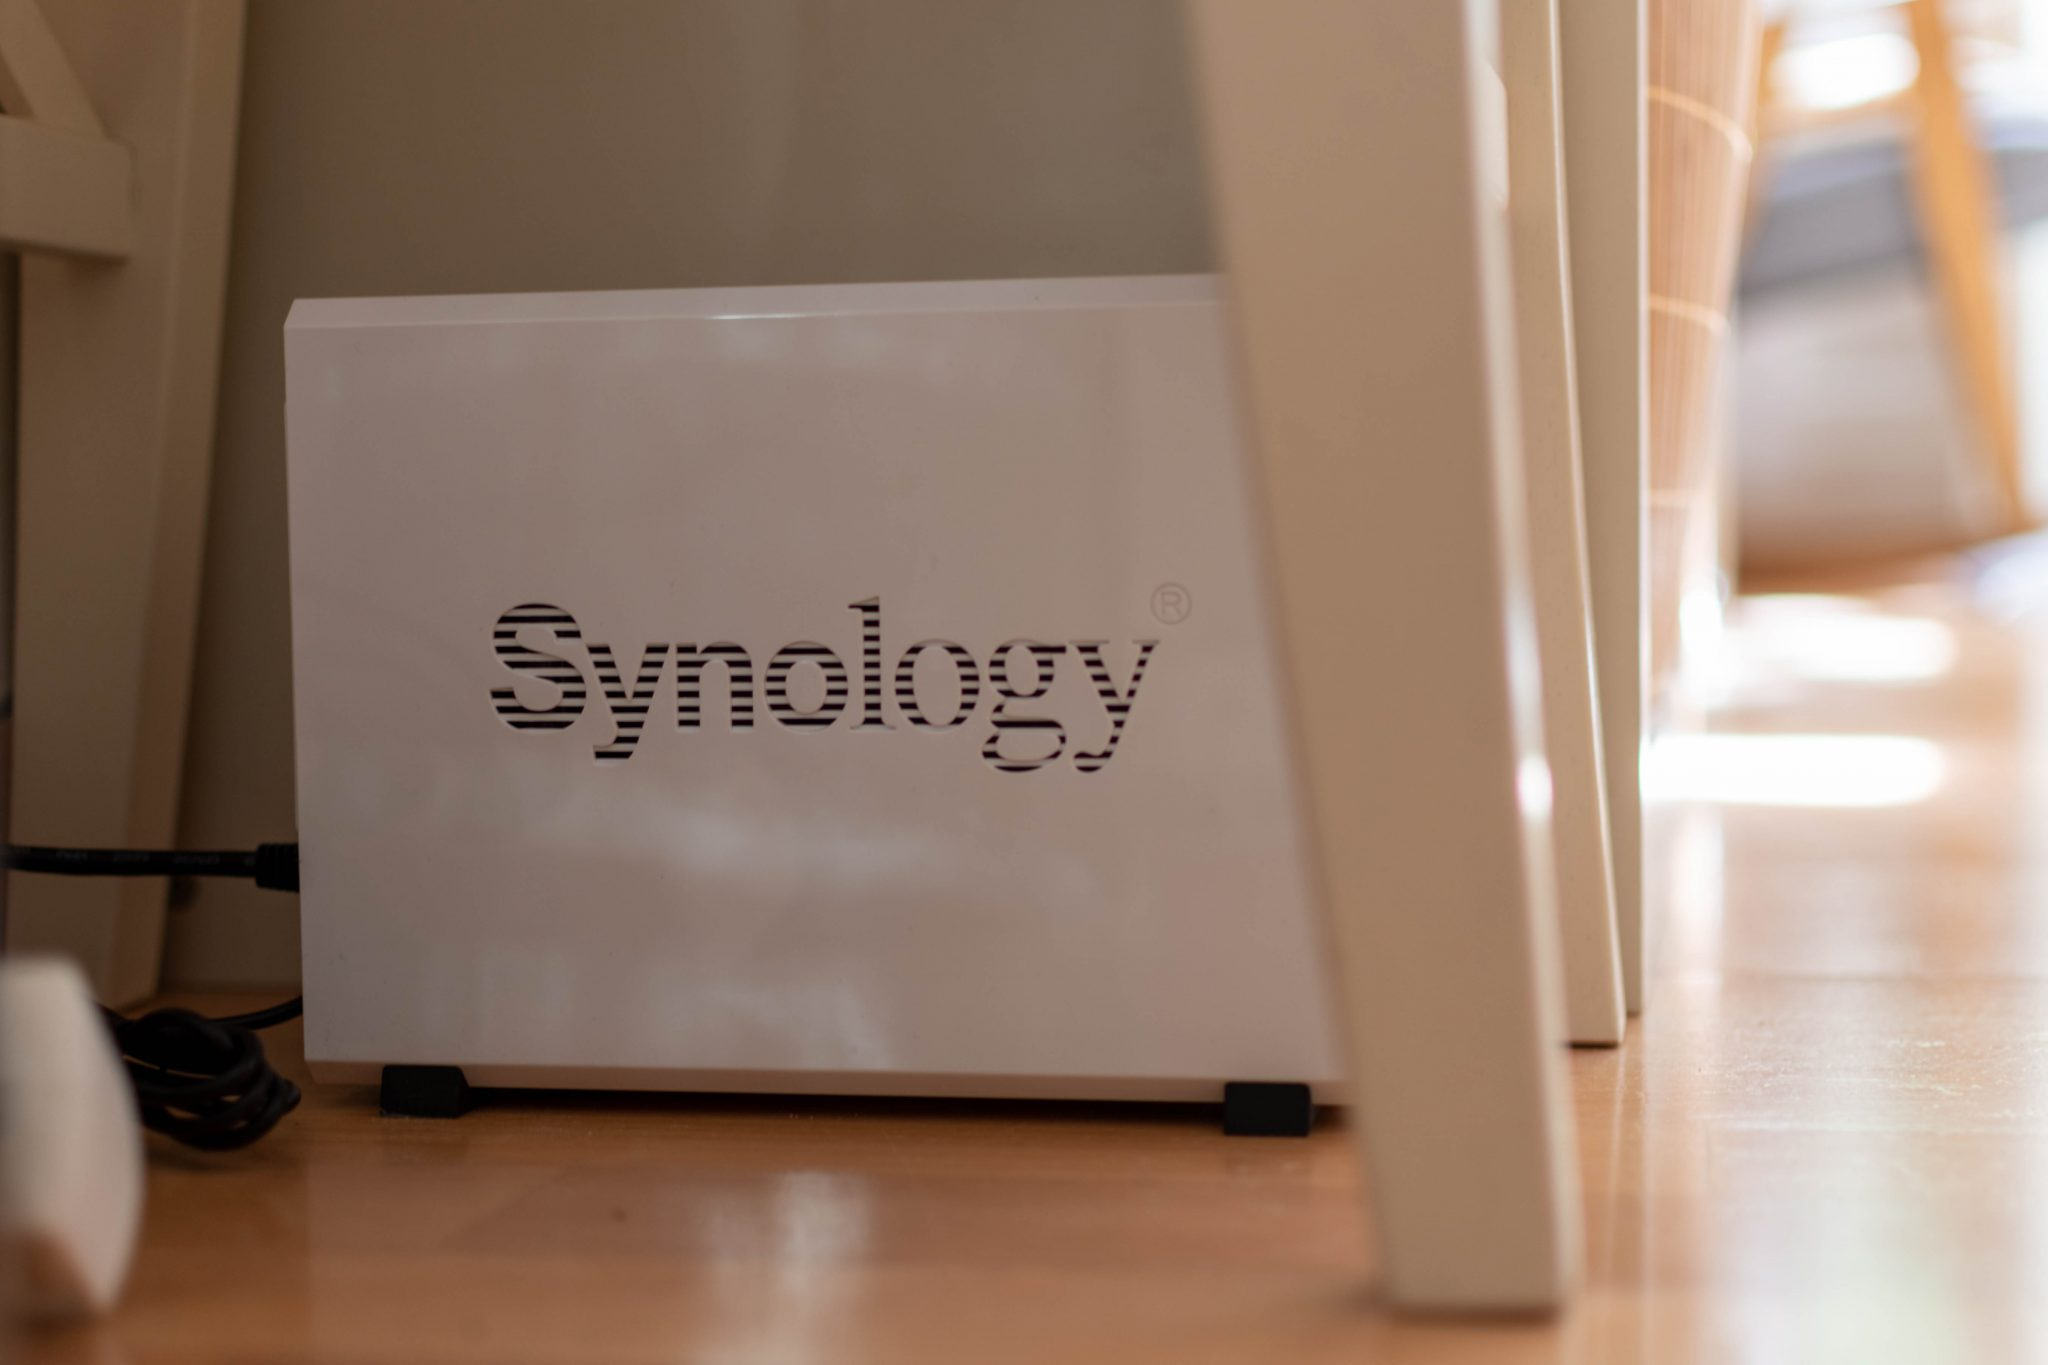 How to Set up Google Photos replacement with a Synology NAS?